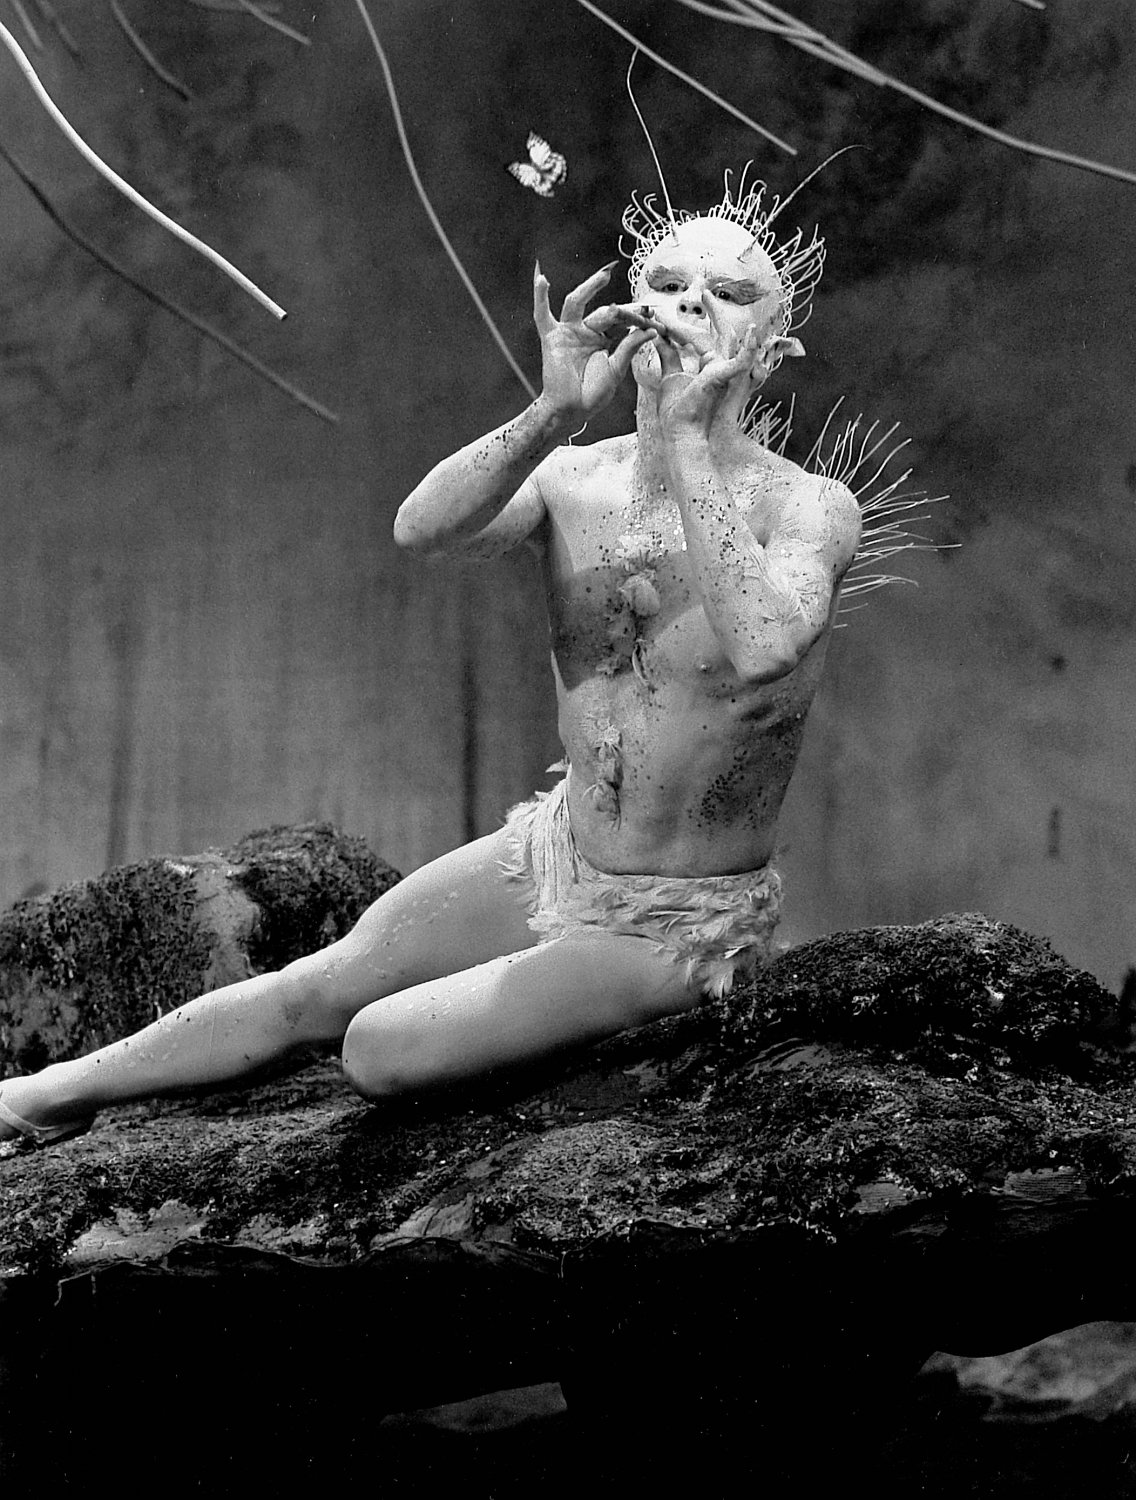 - Roddy McDowall as Ariel in Shakespeare's <I>The Tempest</I> - Shakespeare - The Tempest - Richard Burton - Maurice Evans - Lee Remick - Roddy McDowall - NBC Television - Hallmark Hall of Fame - Tony Karp, design, art, photography, techno-impressionist, techno-impressionism, aerial photography , drone , drones , dji , mavic pro , video , 3D printing - Books -